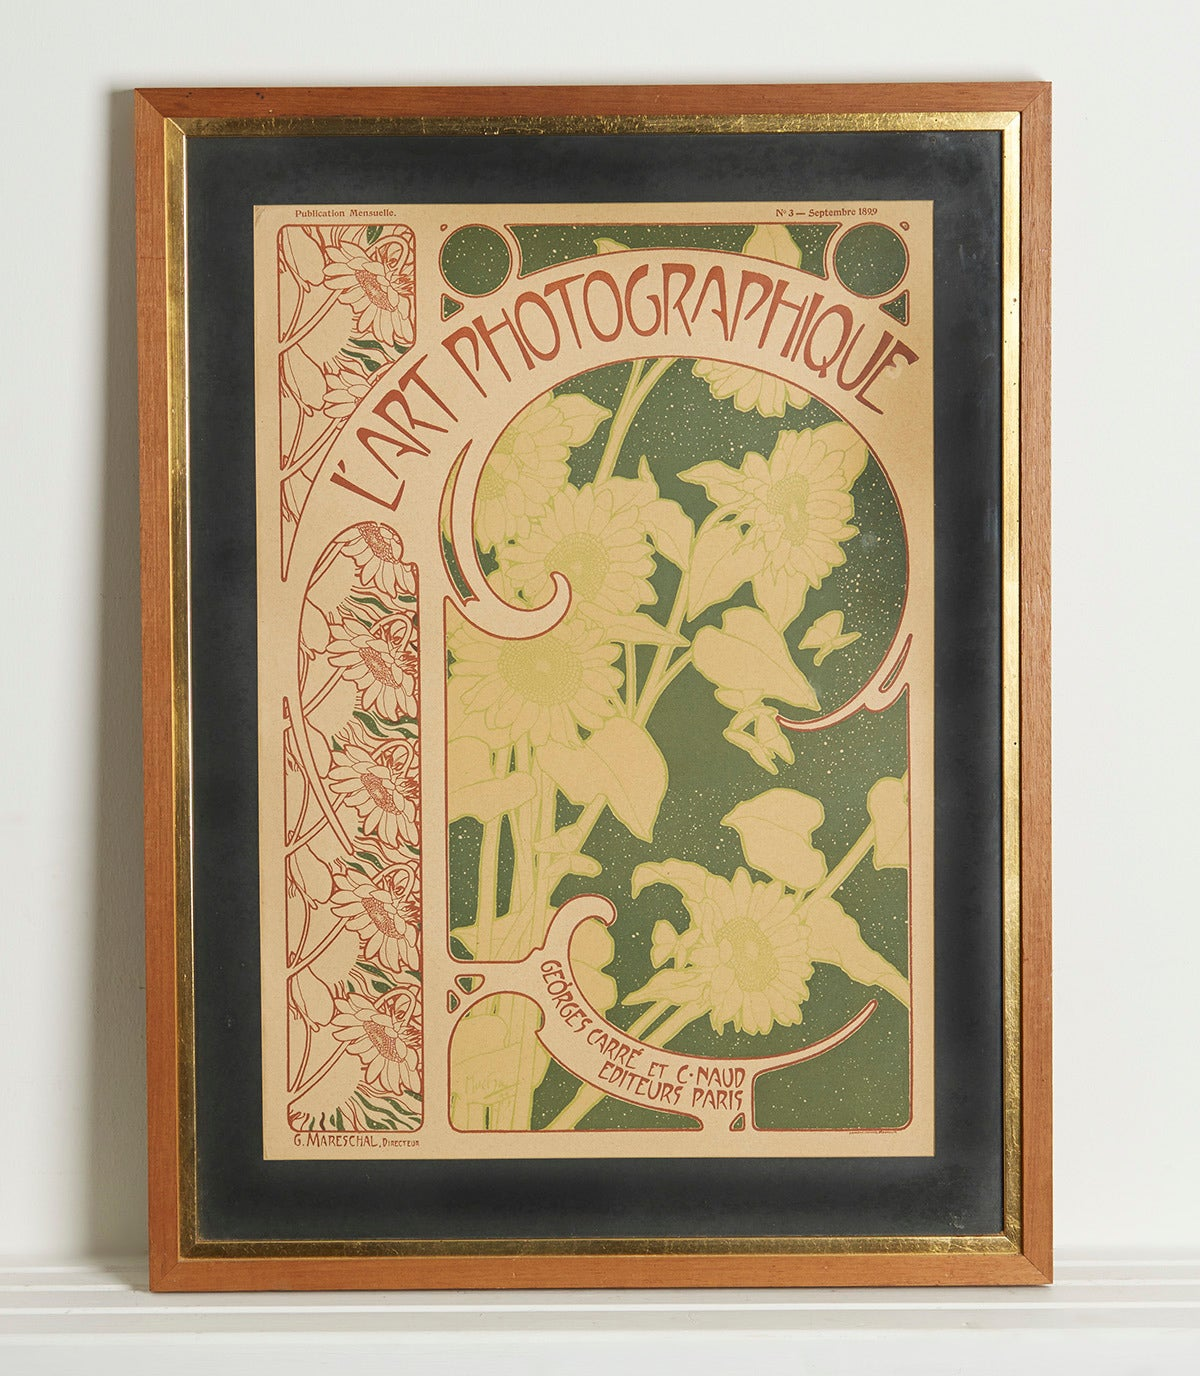 The editor of the publishing journal L'Art Photographique George Carre had stressed his intentions, but inability to have photographic covers for the journal. The talented Artist Alphonso Mucha was hired to produce innovative Art Nouveau style